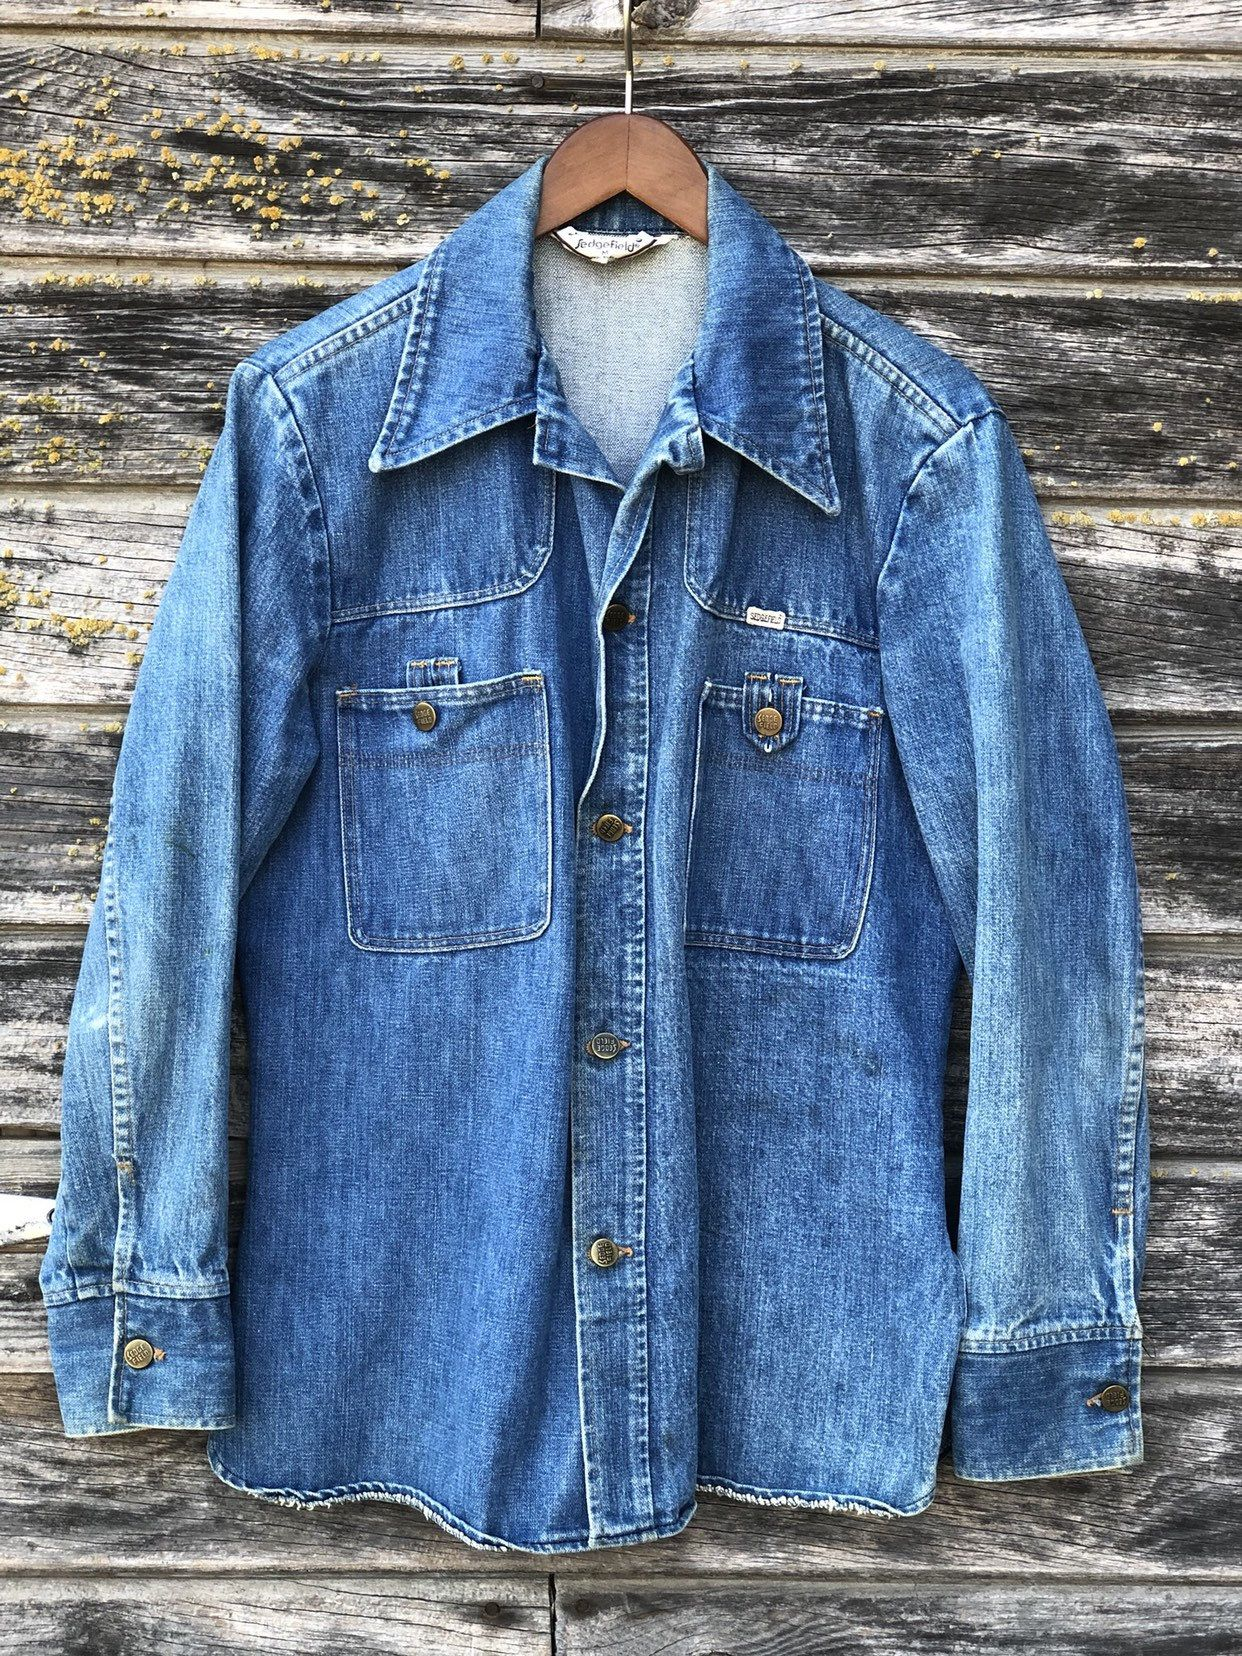 70s denim jacket men M Sedgefield DoNothing 1970s biker